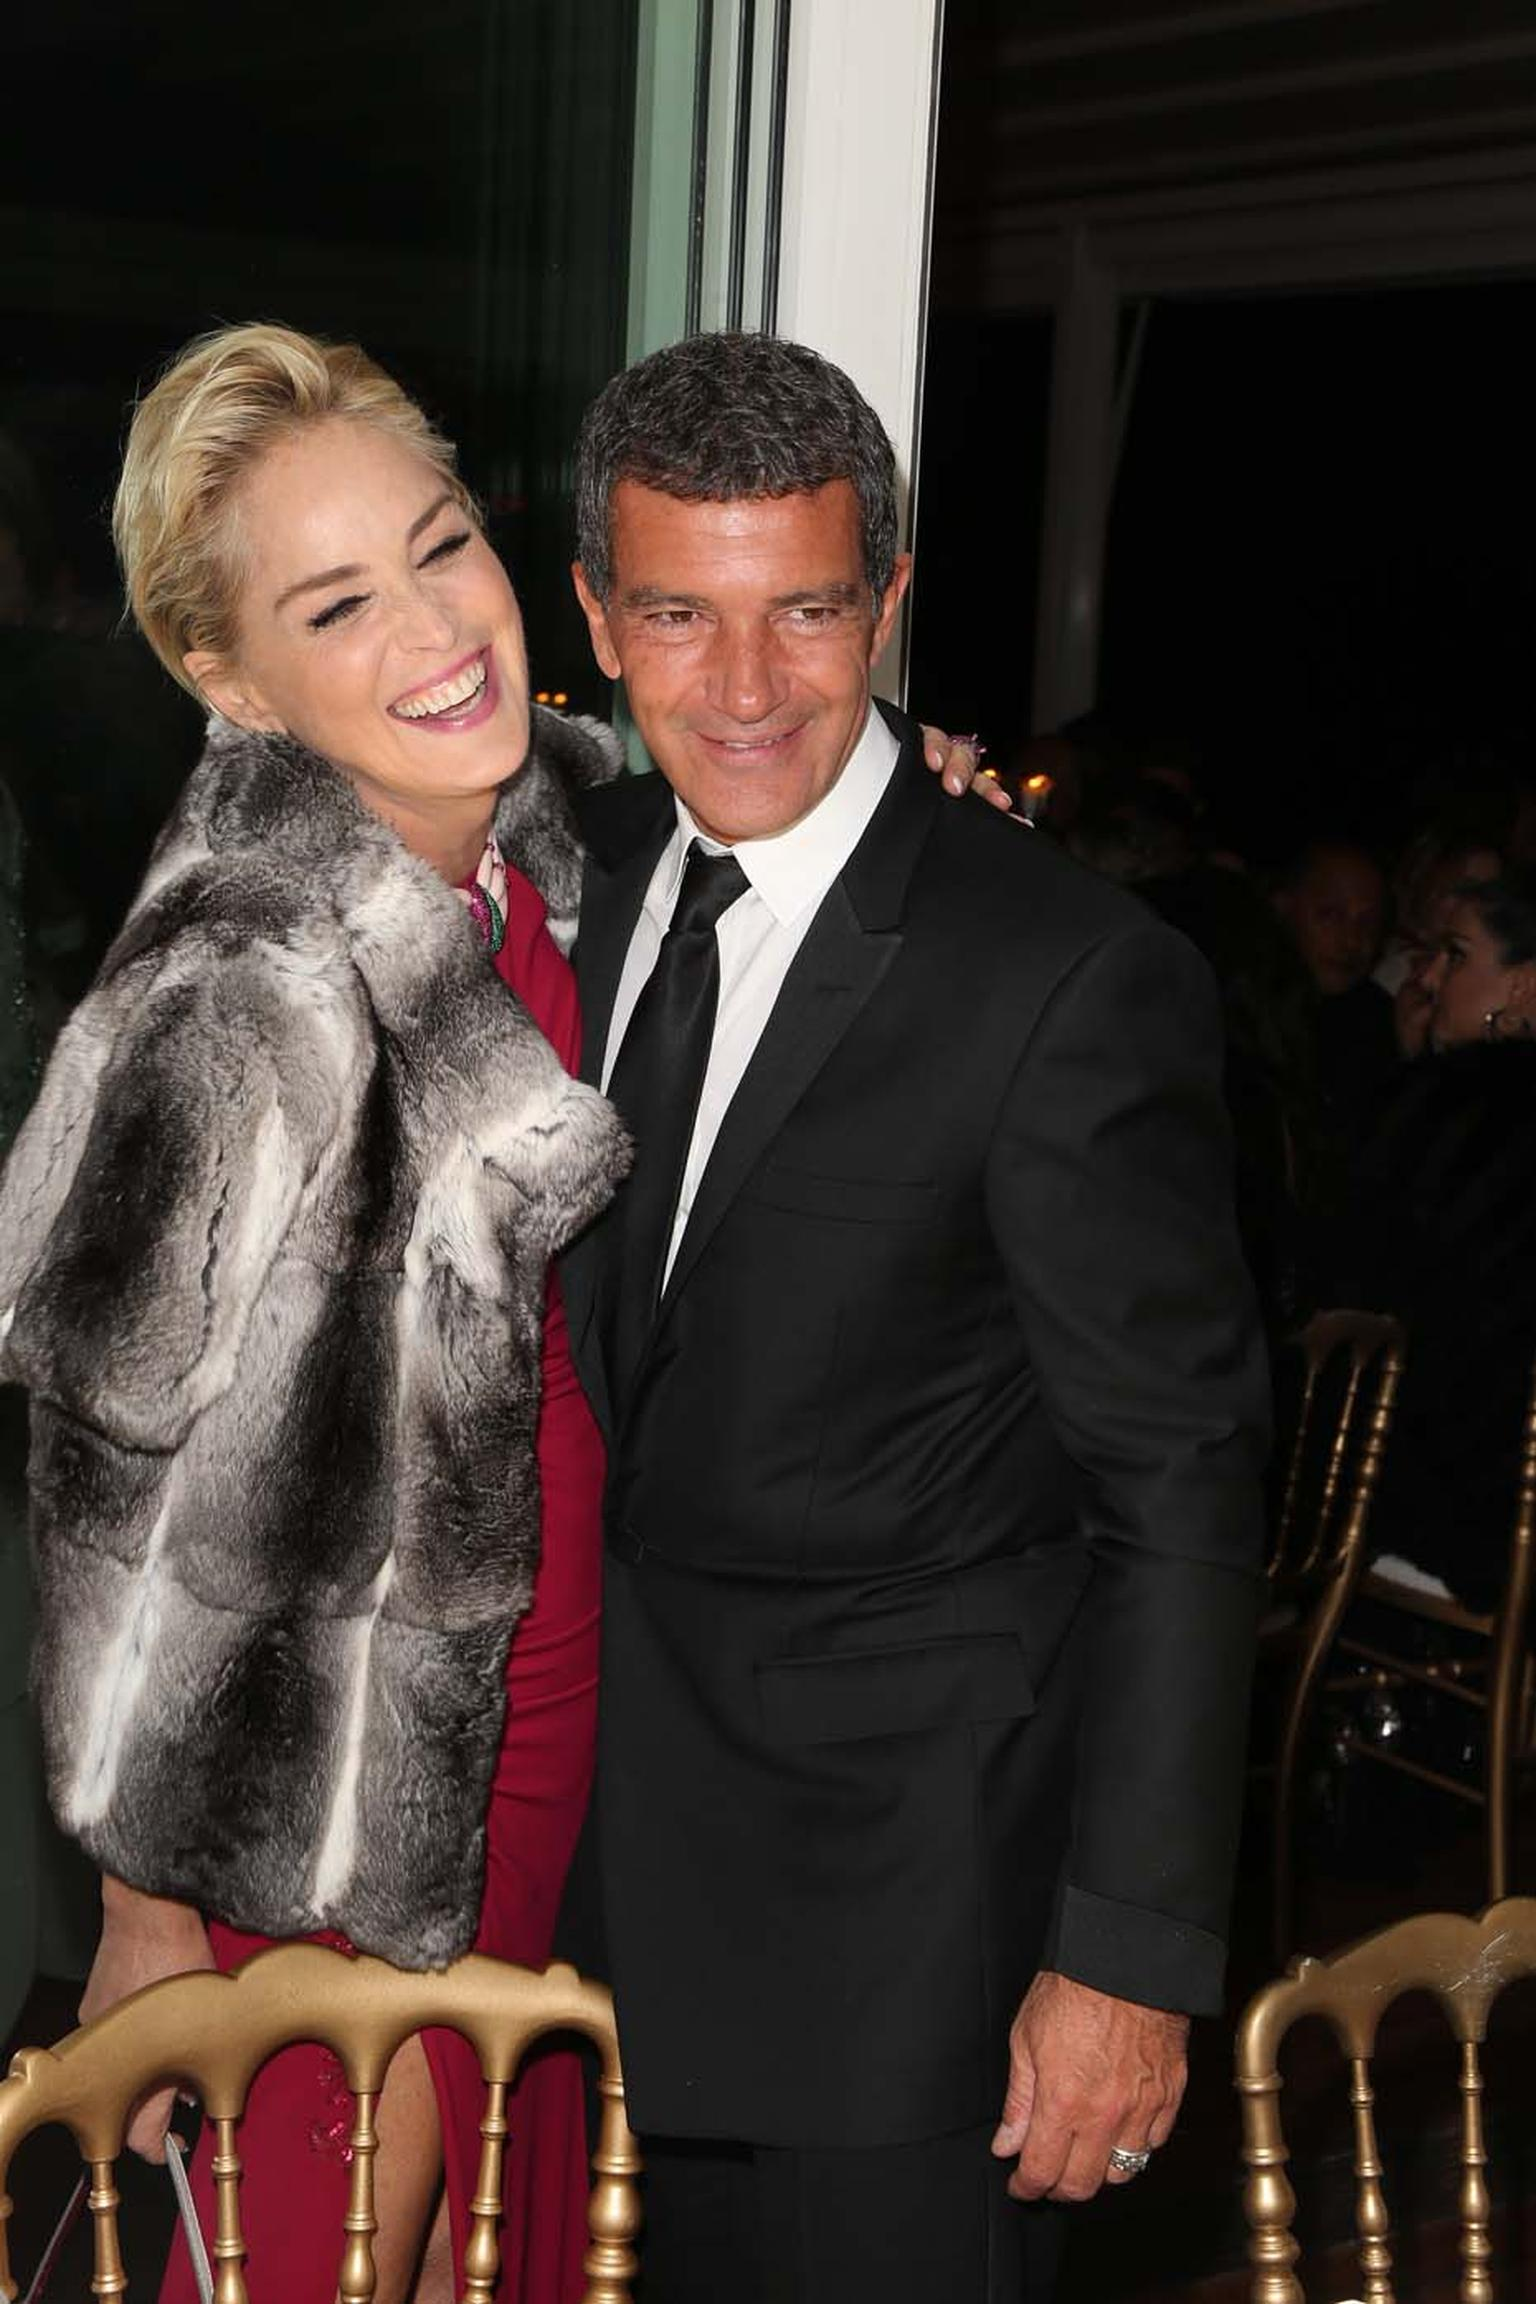 Sharon stone jokes around with de GRISOGONO